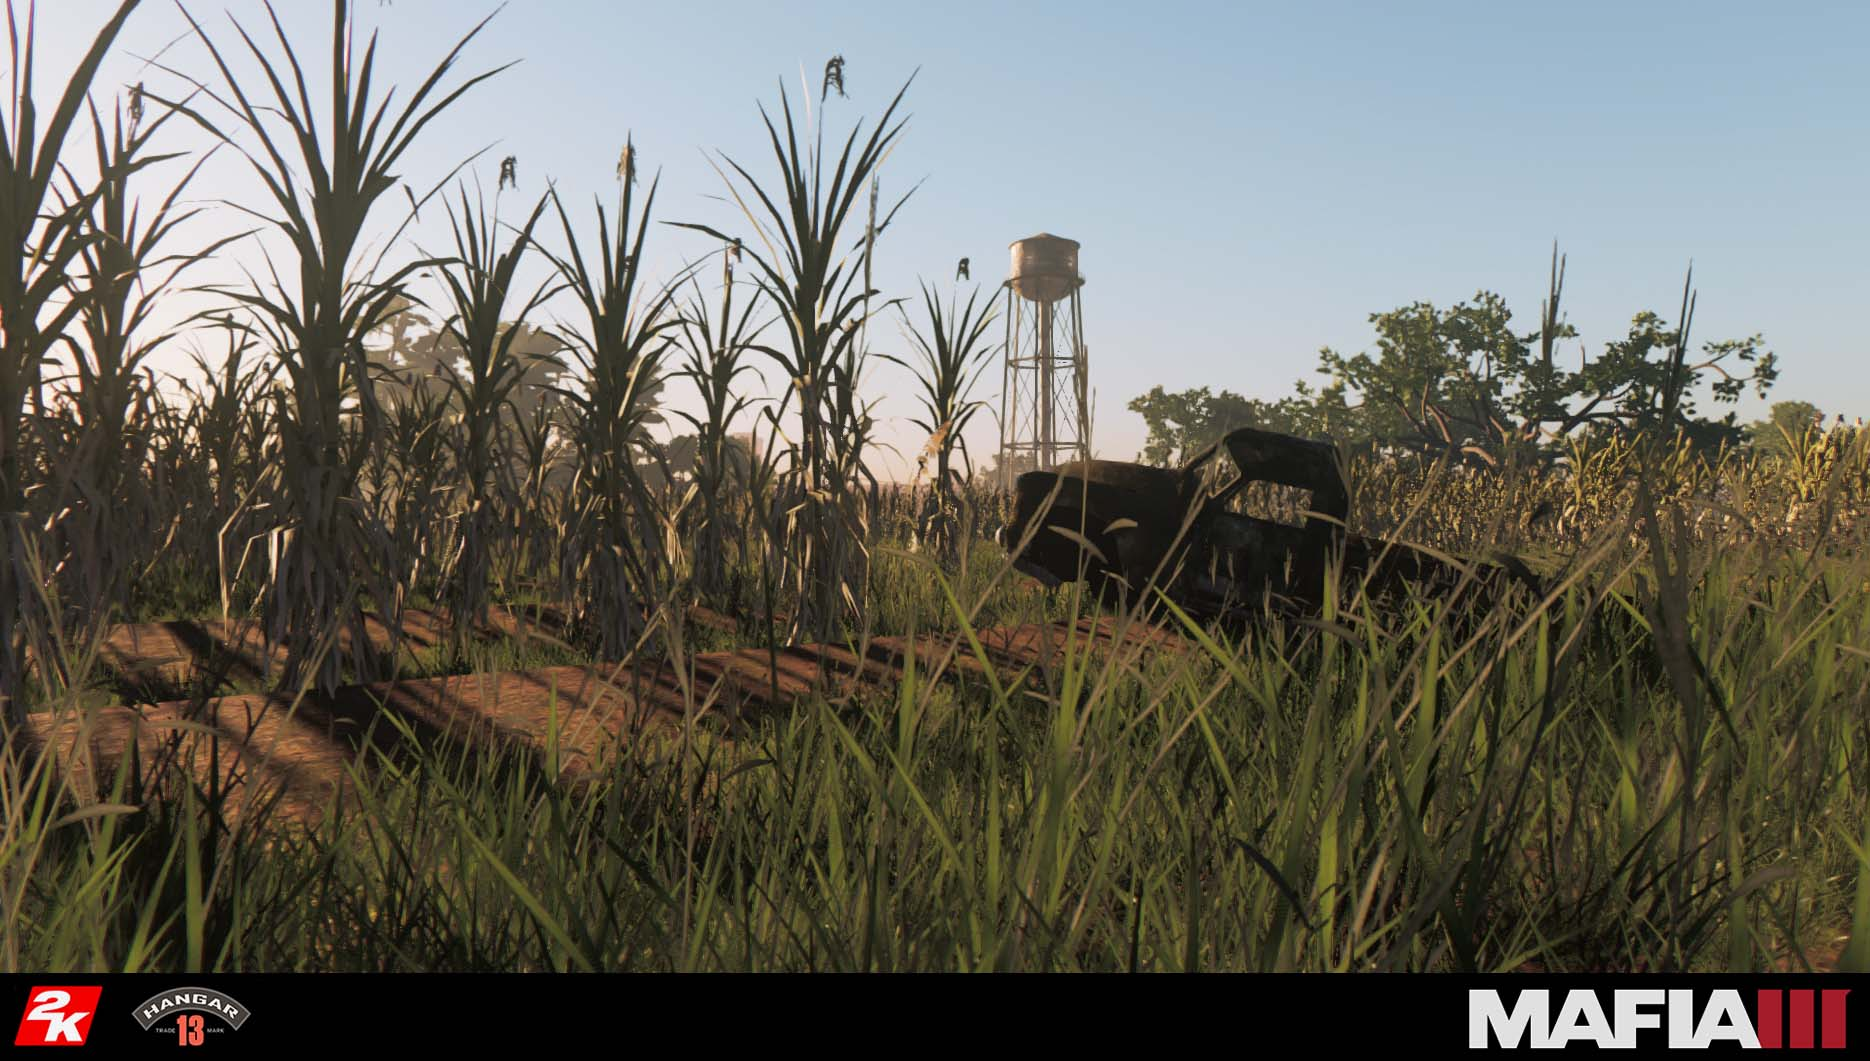 Among the regions of the bayou, from the swamp to the riverlands, this plantation area was especially fun in establishing it as part of the bayou yet distinguished enough to distance it from the more jungle-y areas surrounding it.